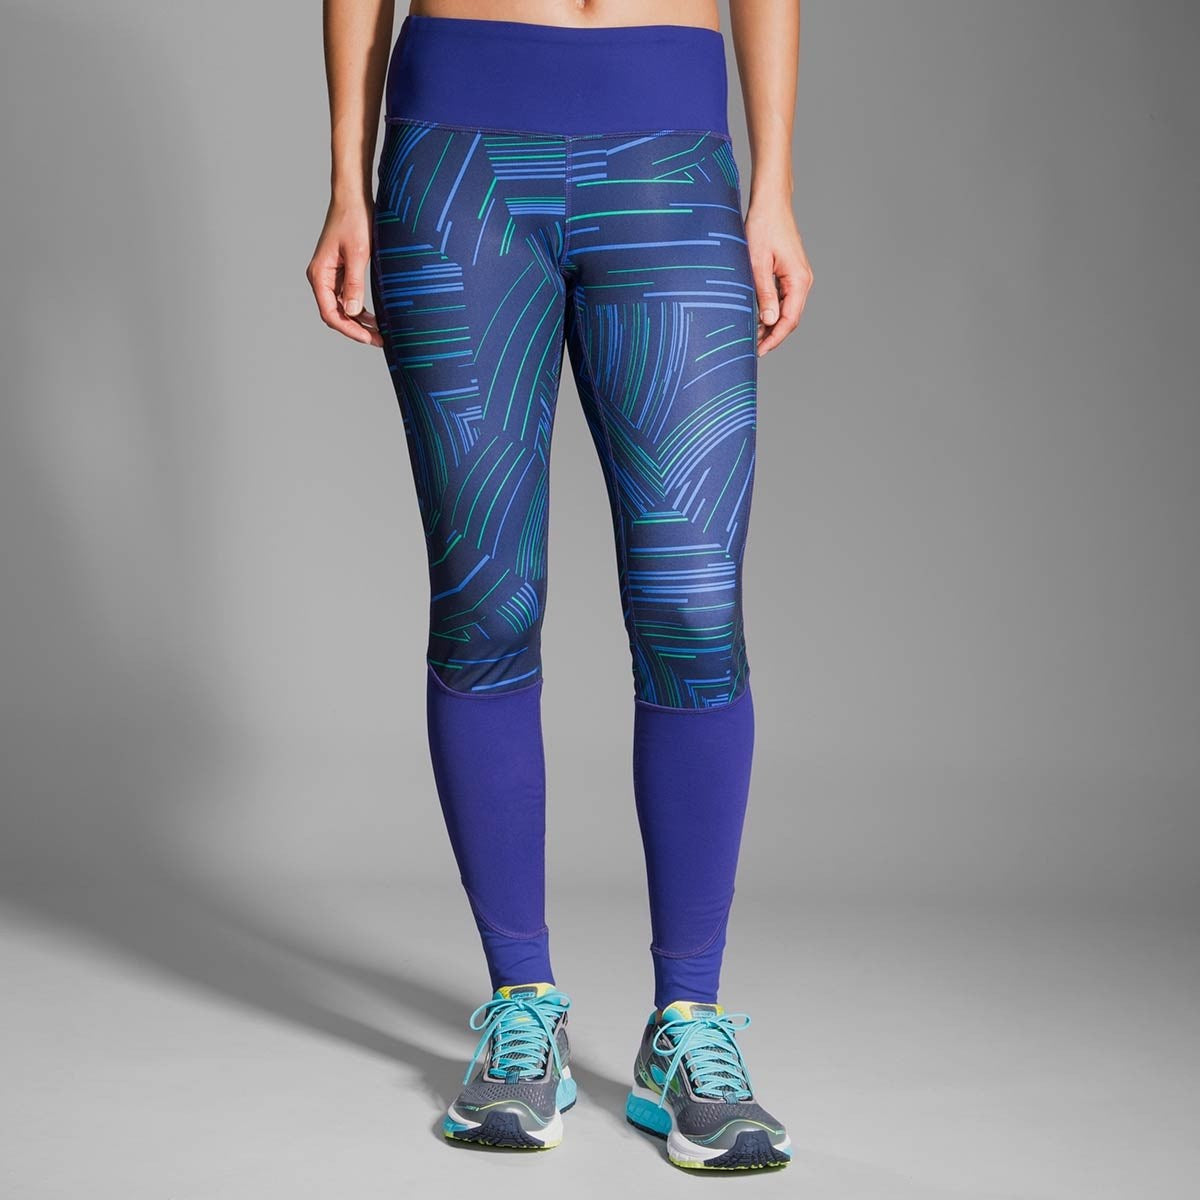 Threshold Tight Wmns - Navy/Cosmo Marine